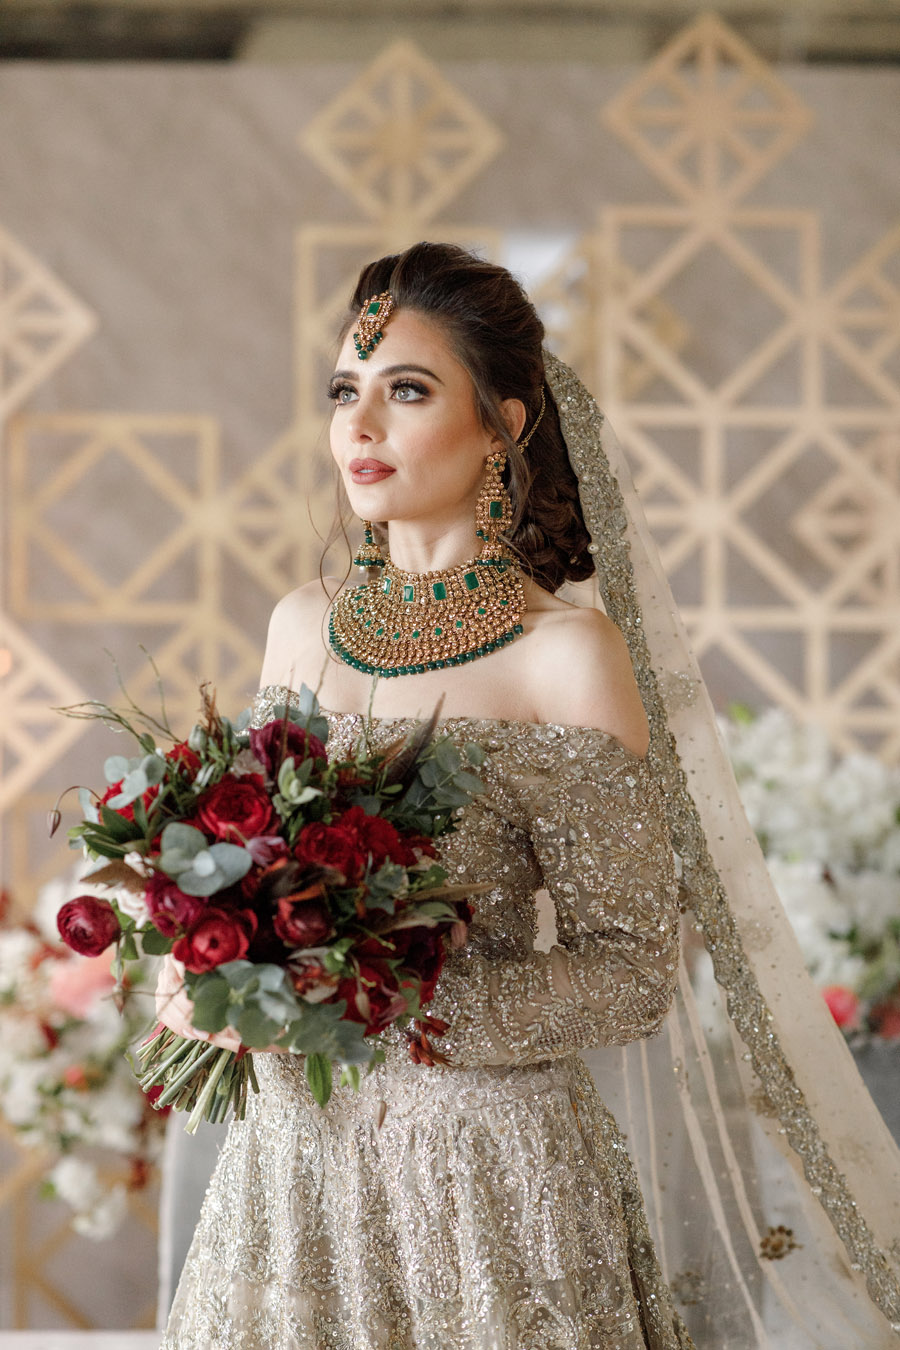 Asian wedding styling ideas on the English Wedding Blog with The Wedding Fairy and Zehra Jagani Photographer (25)